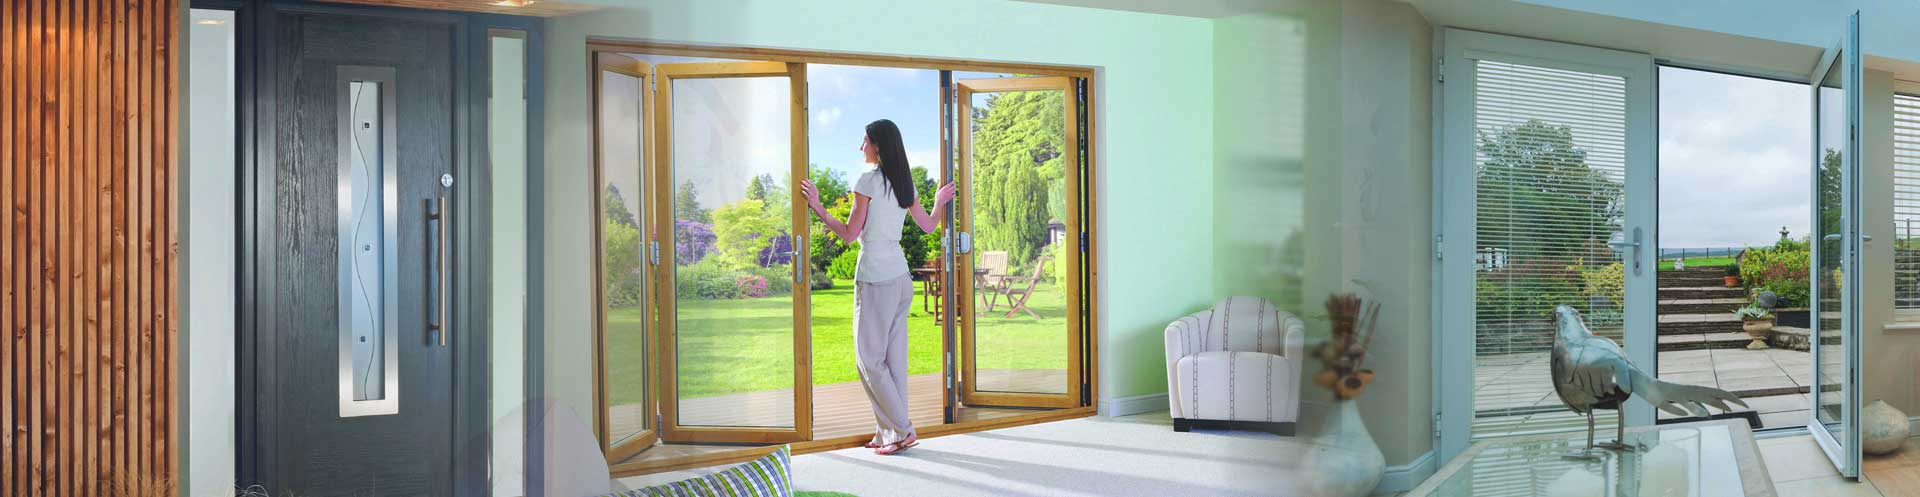 bifold doors in ni dublin turkington windows